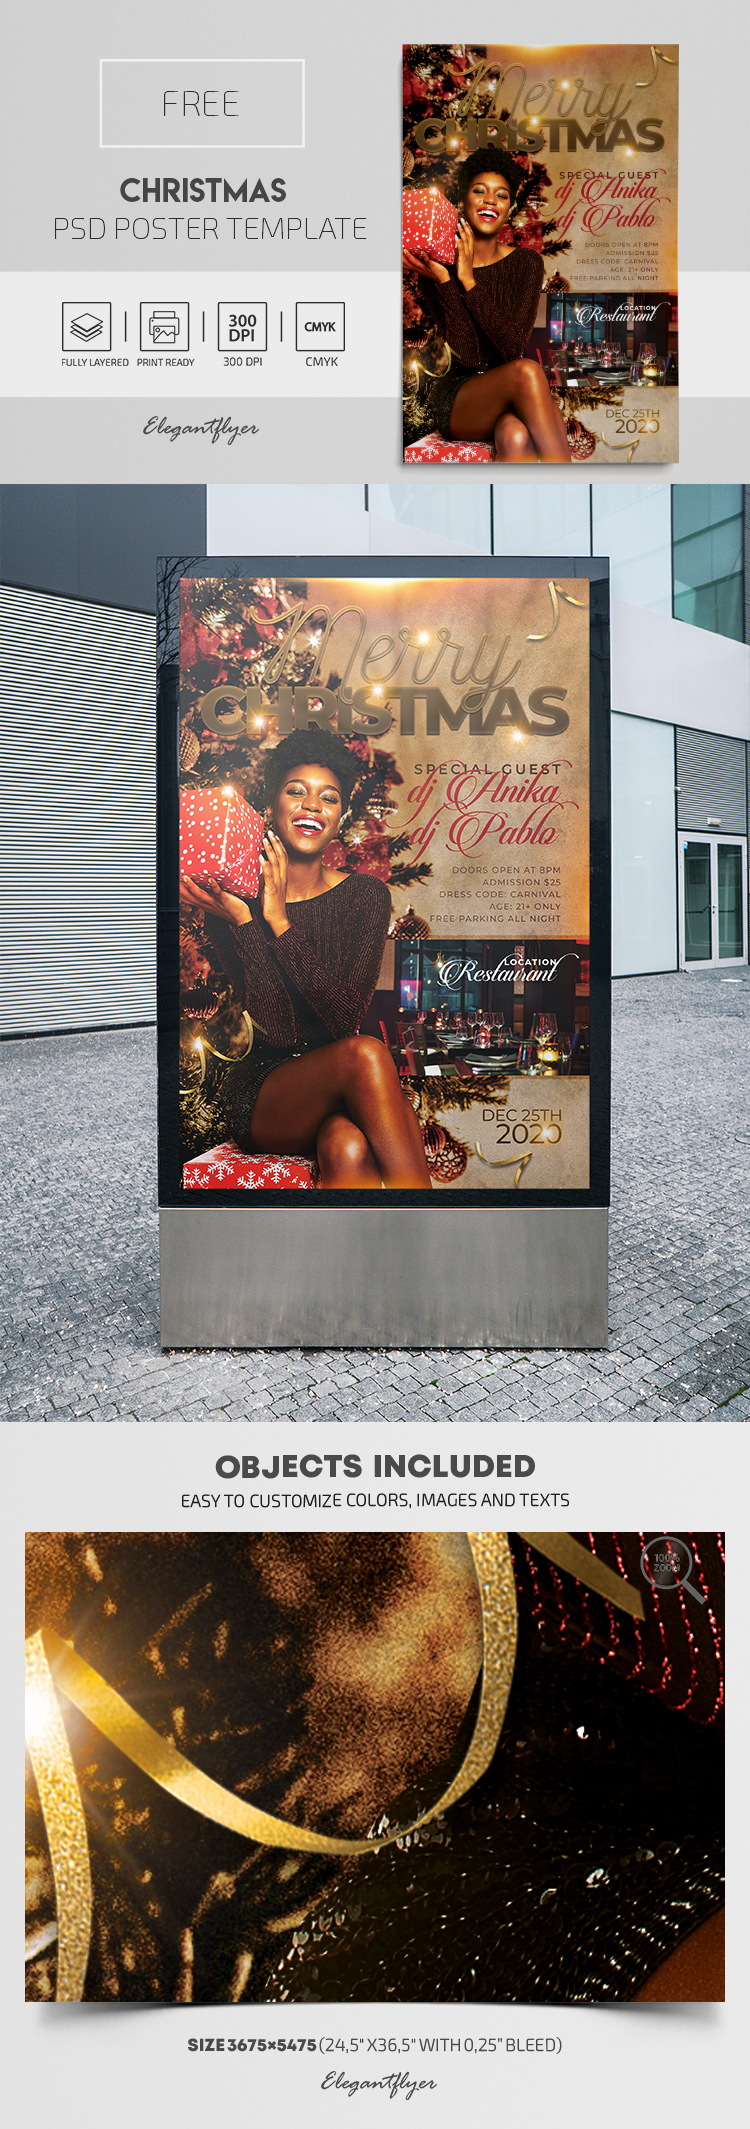 Christmas – Free PSD Poster Template